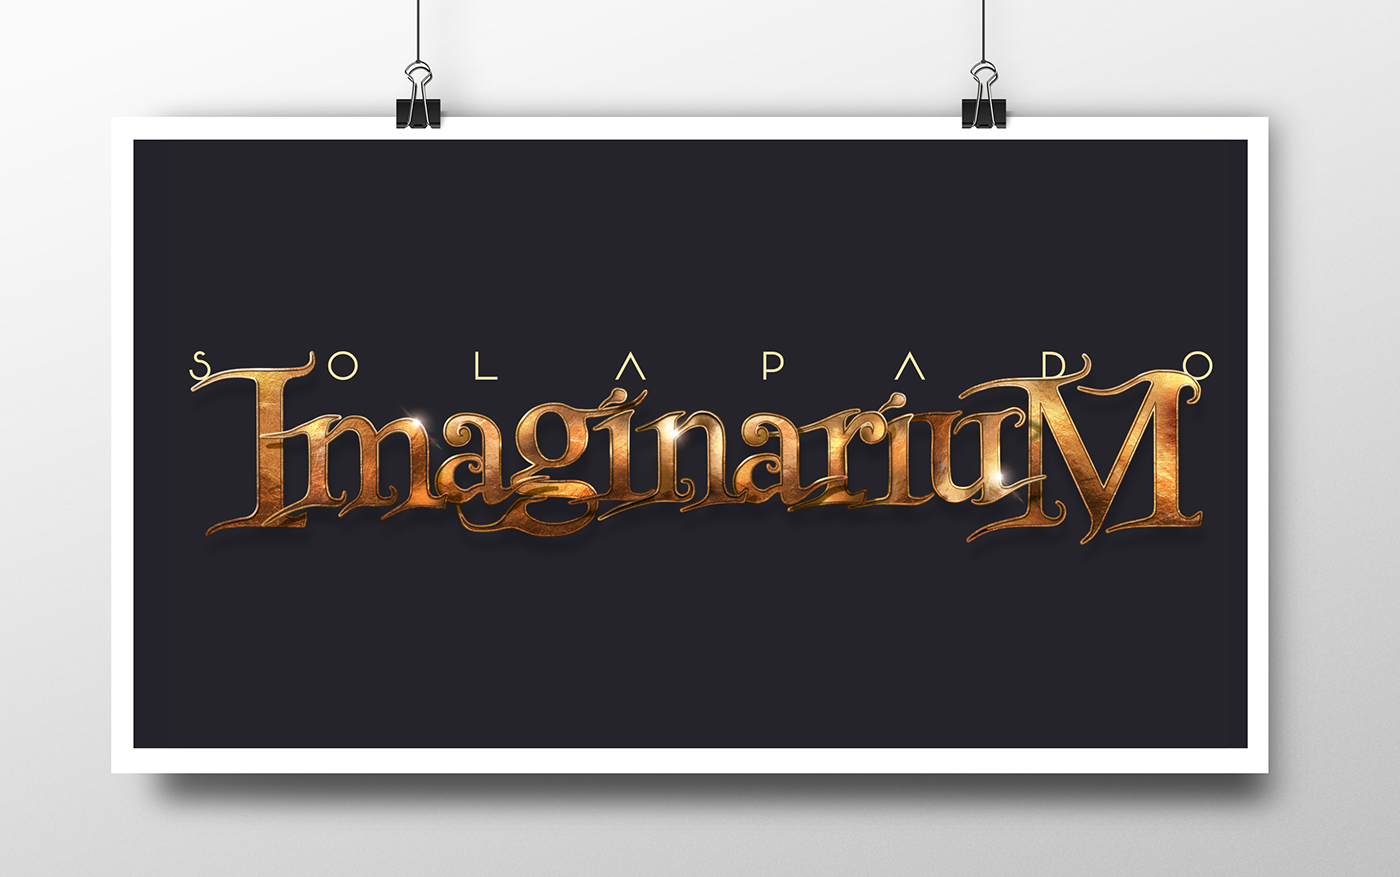 photoshop lettering logo crafting church campaign graphic Advertising